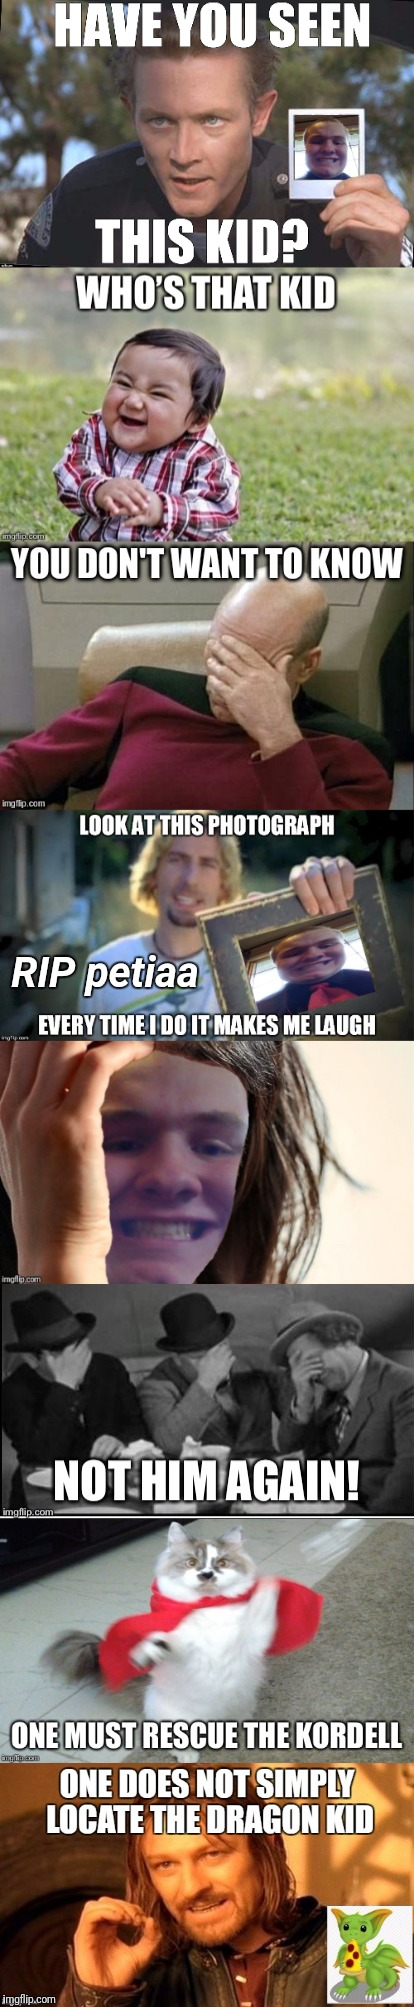 Thanks for the laughs, petiaa.  Sorry you had to go... Godspeed wherever you are. | RIP petiaa | image tagged in deleted accounts,petiaa,awesome,starflightthenightwing,use someones username in your meme | made w/ Imgflip meme maker